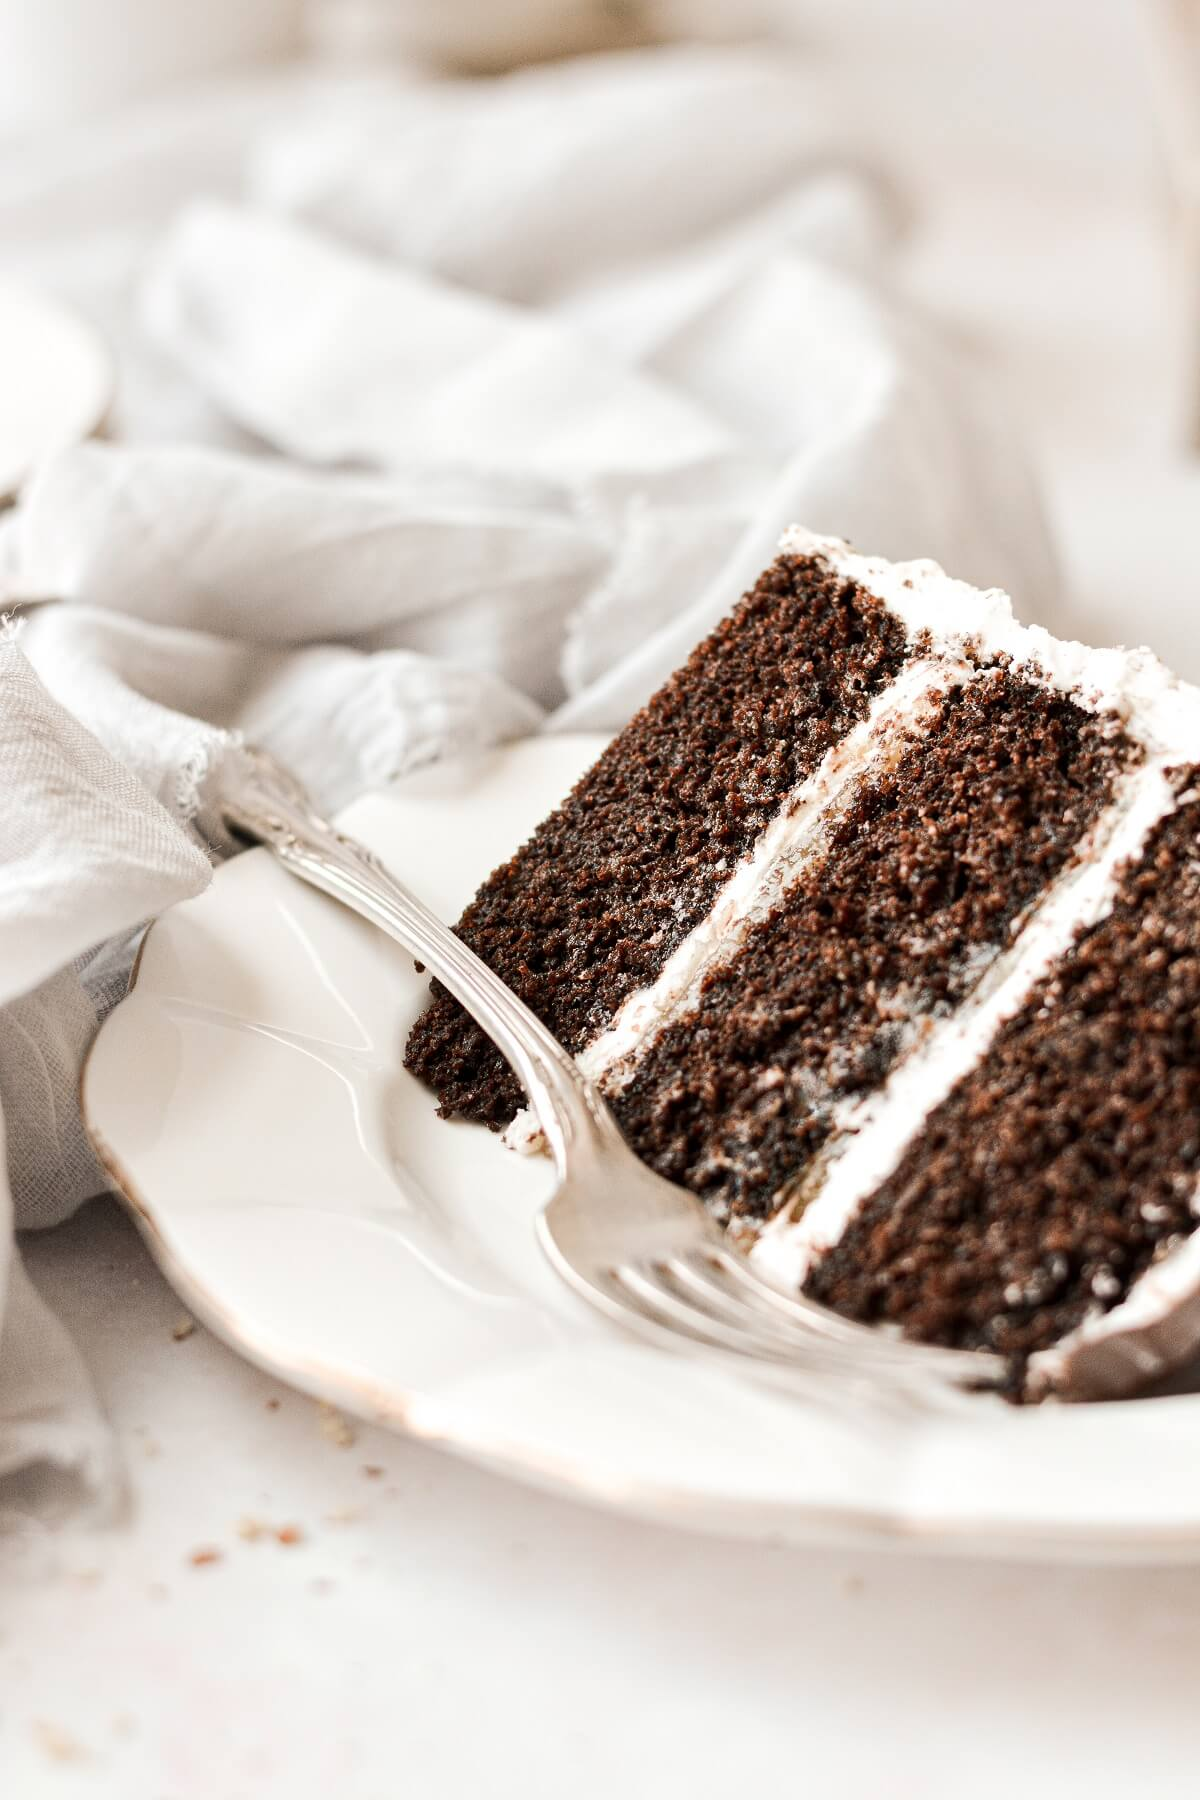 A slice of chocolate almond cake on a white plate.